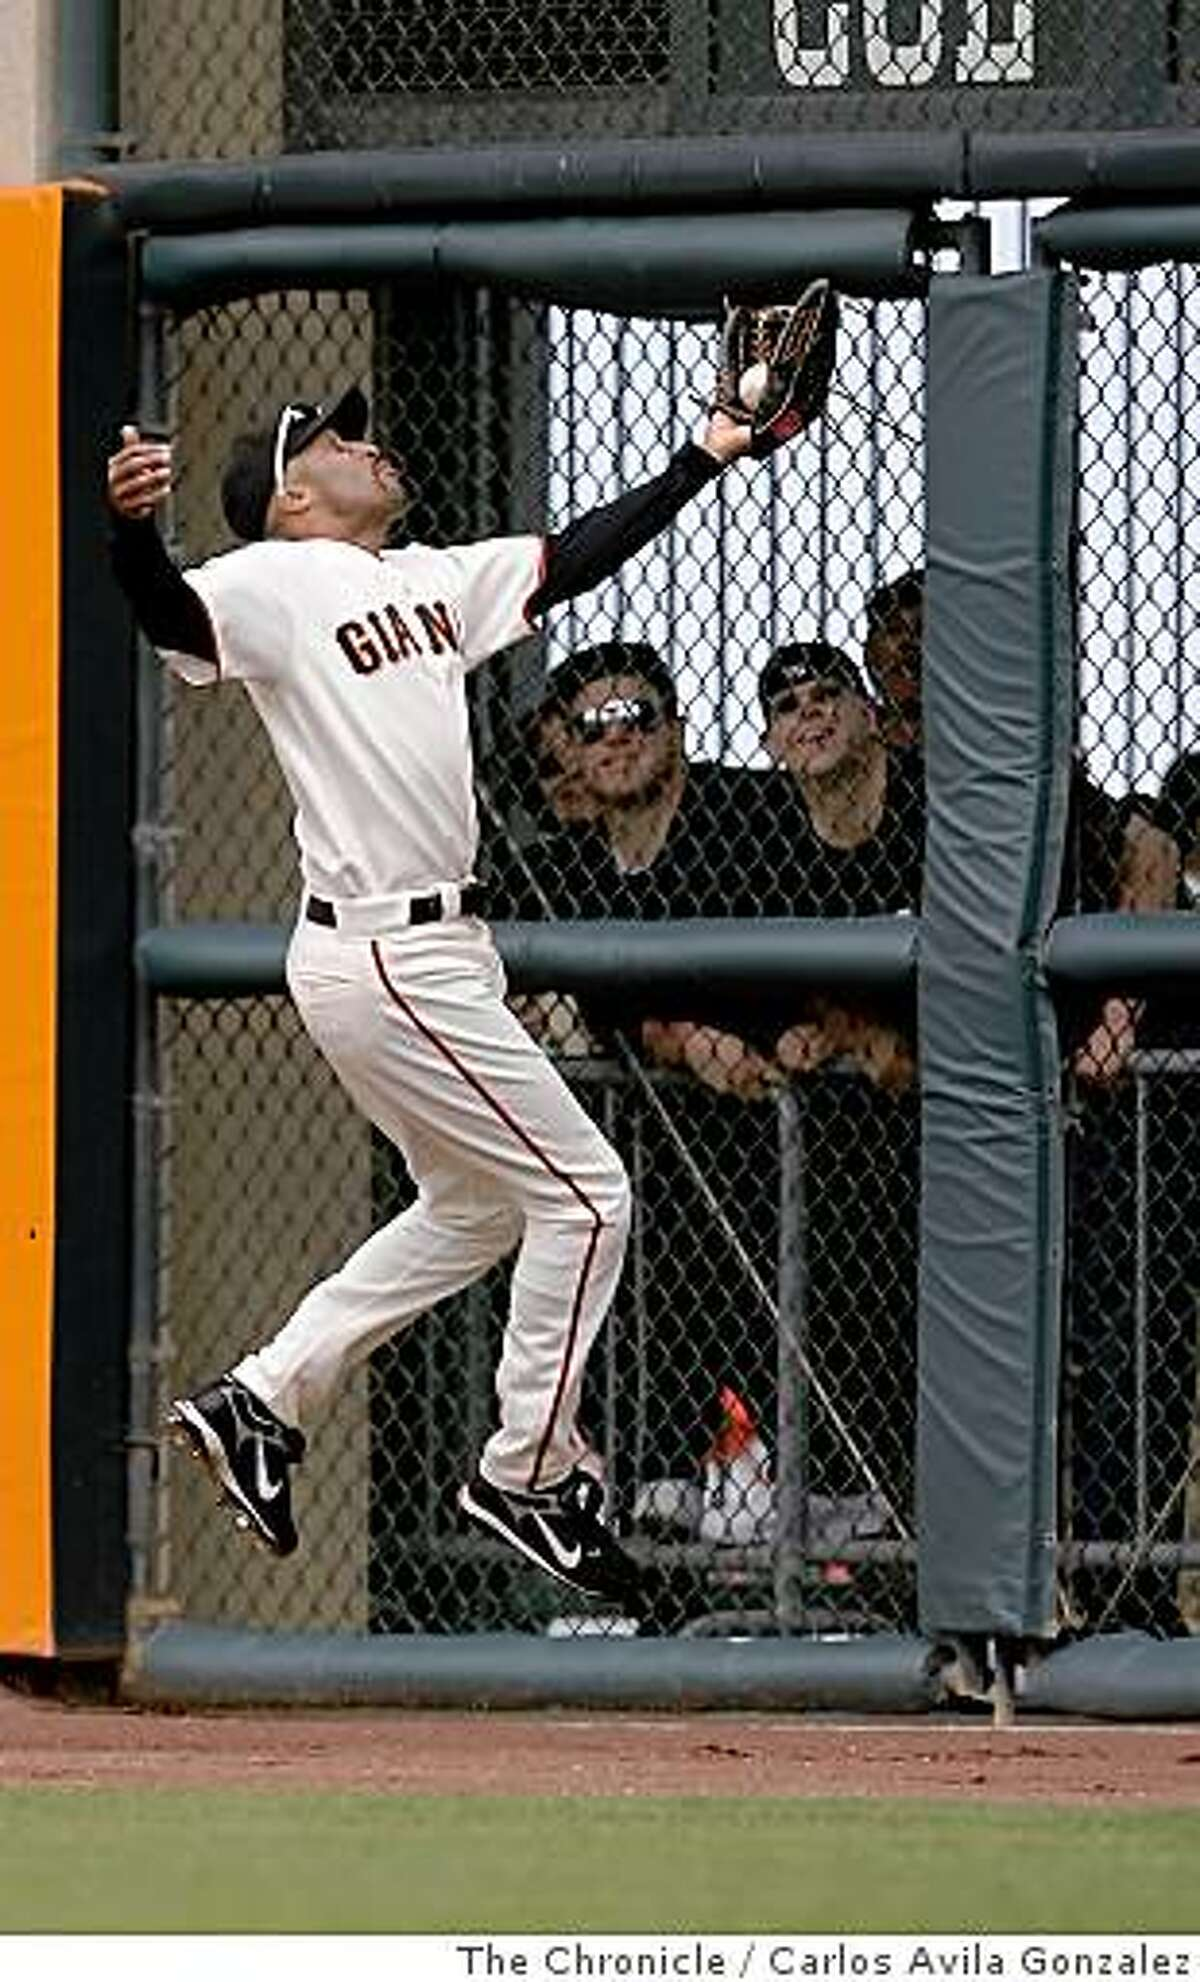 Randy Winn makes a catch in the top of the eighth inning to end the inning. The San Francisco Giants played the Milwaukee Brewers at AT&T Park in San Francisco, Calif., on Sunday, July 20, 2008, losing, 7-4 and were swept in the three game series.Photo by Carlos Avila Gonzalez / The Chronicle